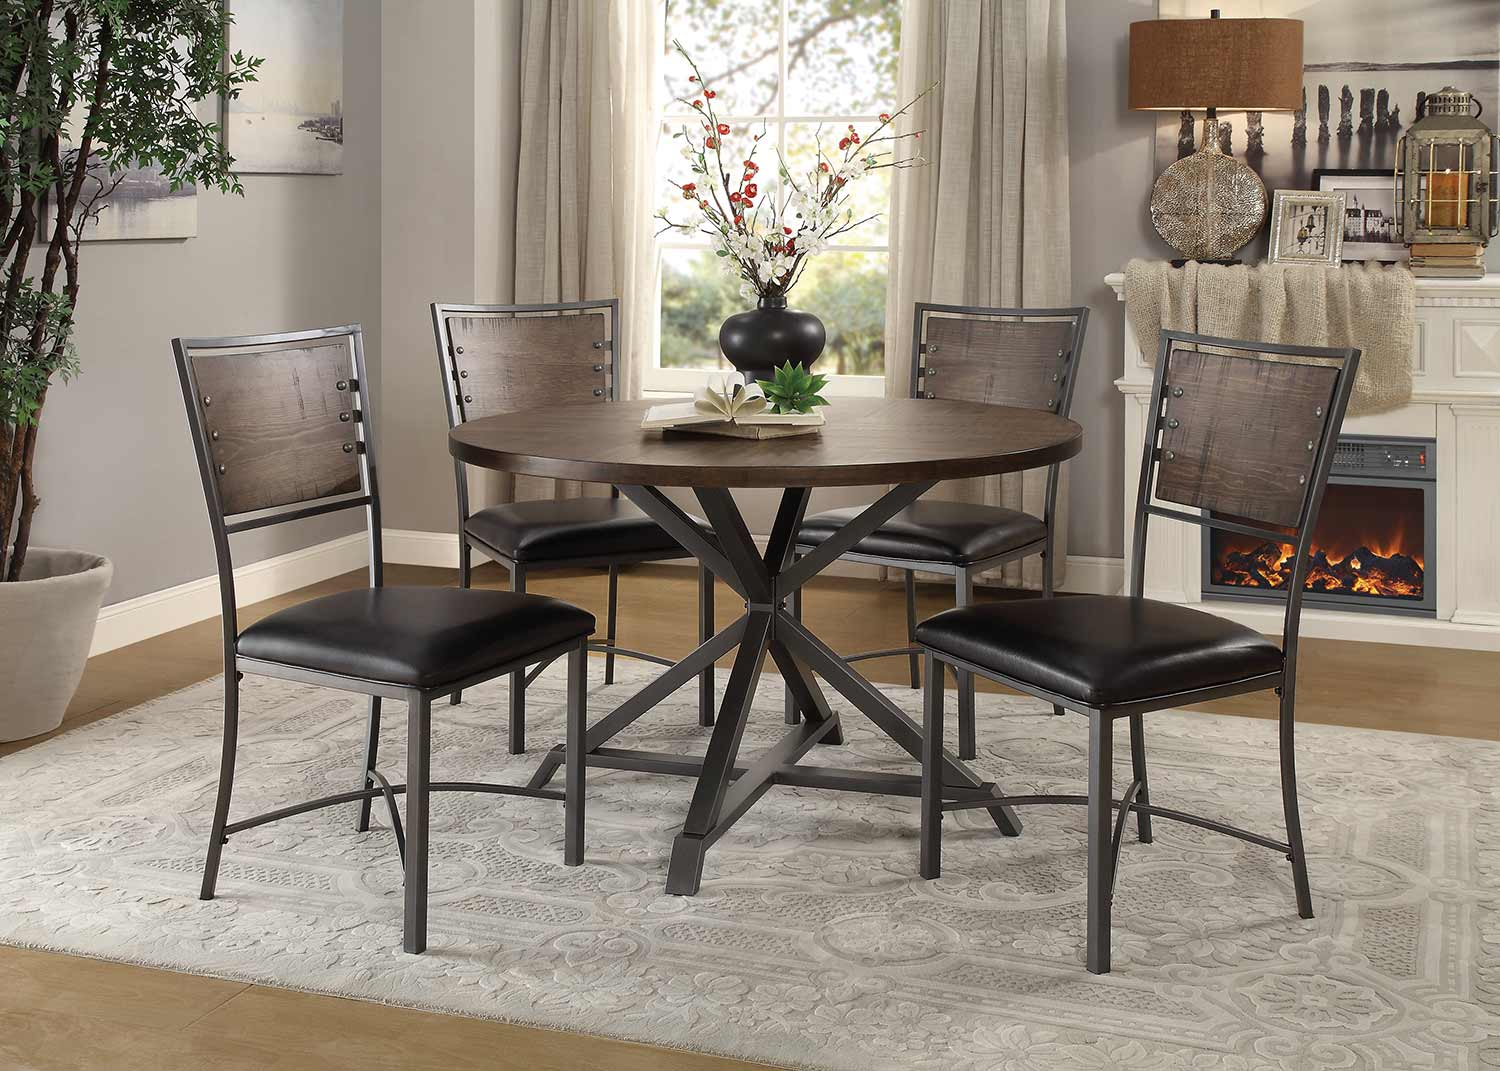 Homelegance Fideo Round Dining Set - Rustic - Gray Metal